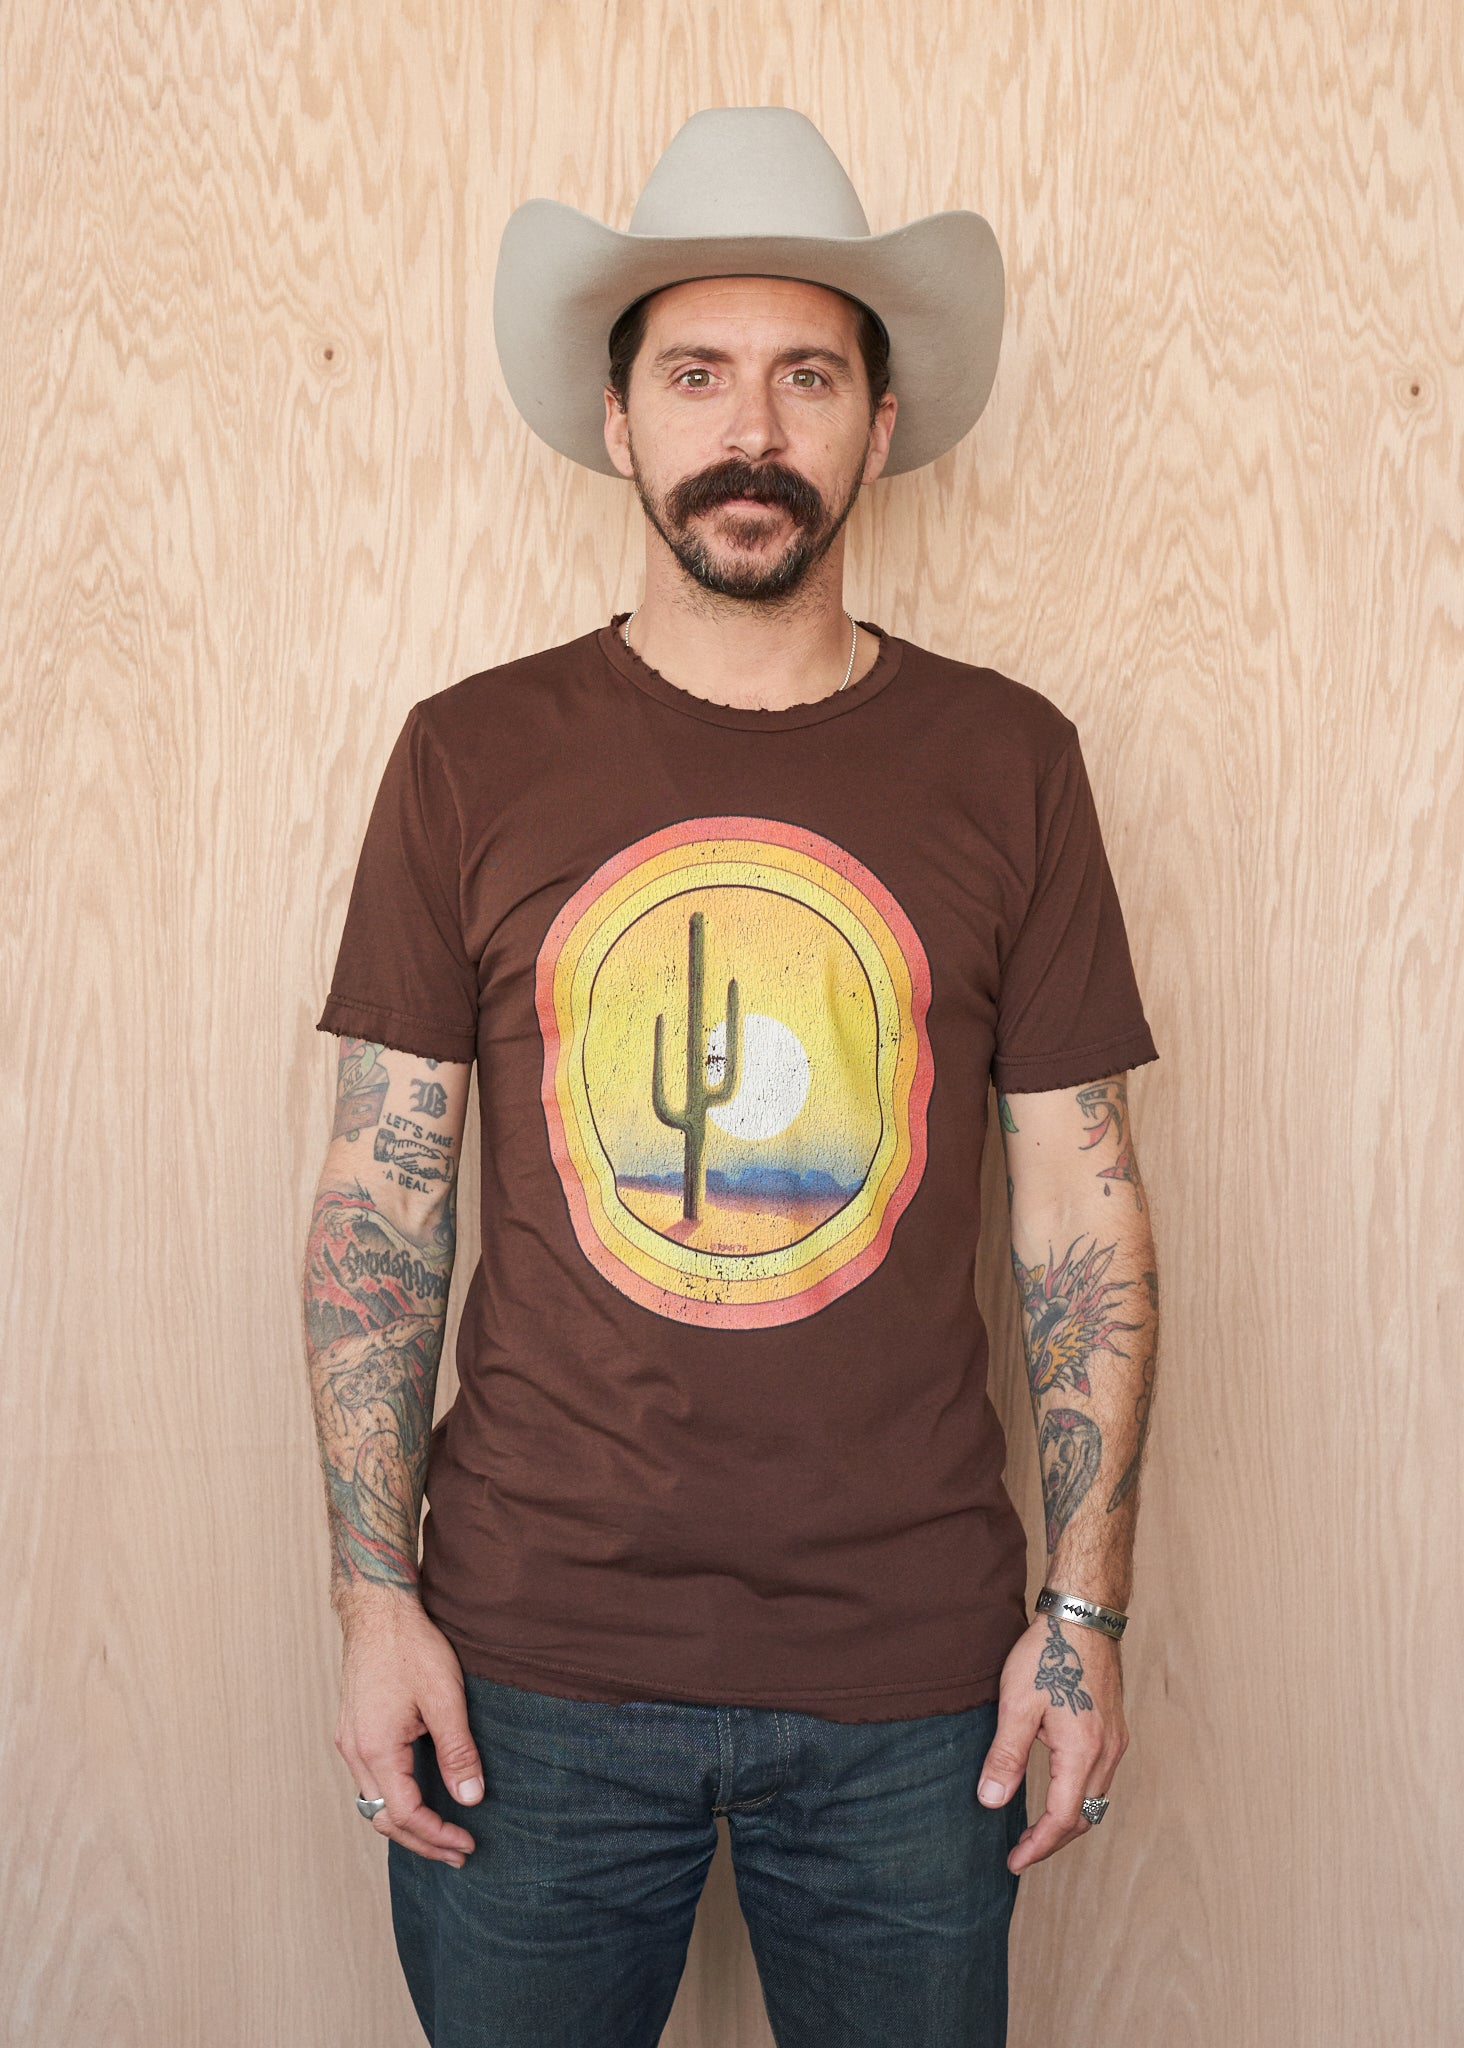 Desert Sunset Men's Crew - Men's Tee Shirt - Midnight Rider